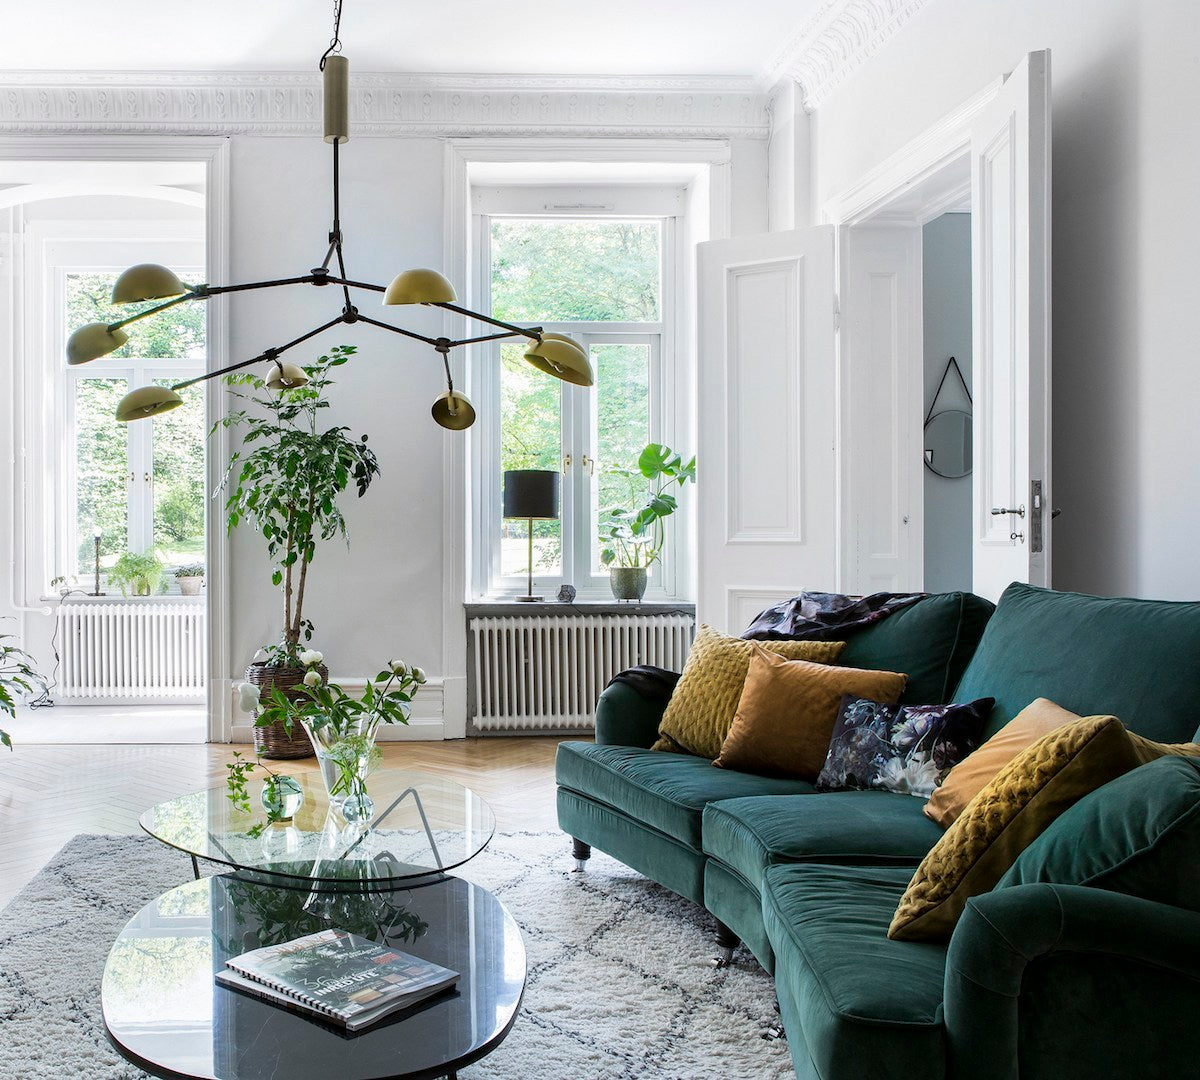 Green & Greenery Styled Together in a Cute Apartment